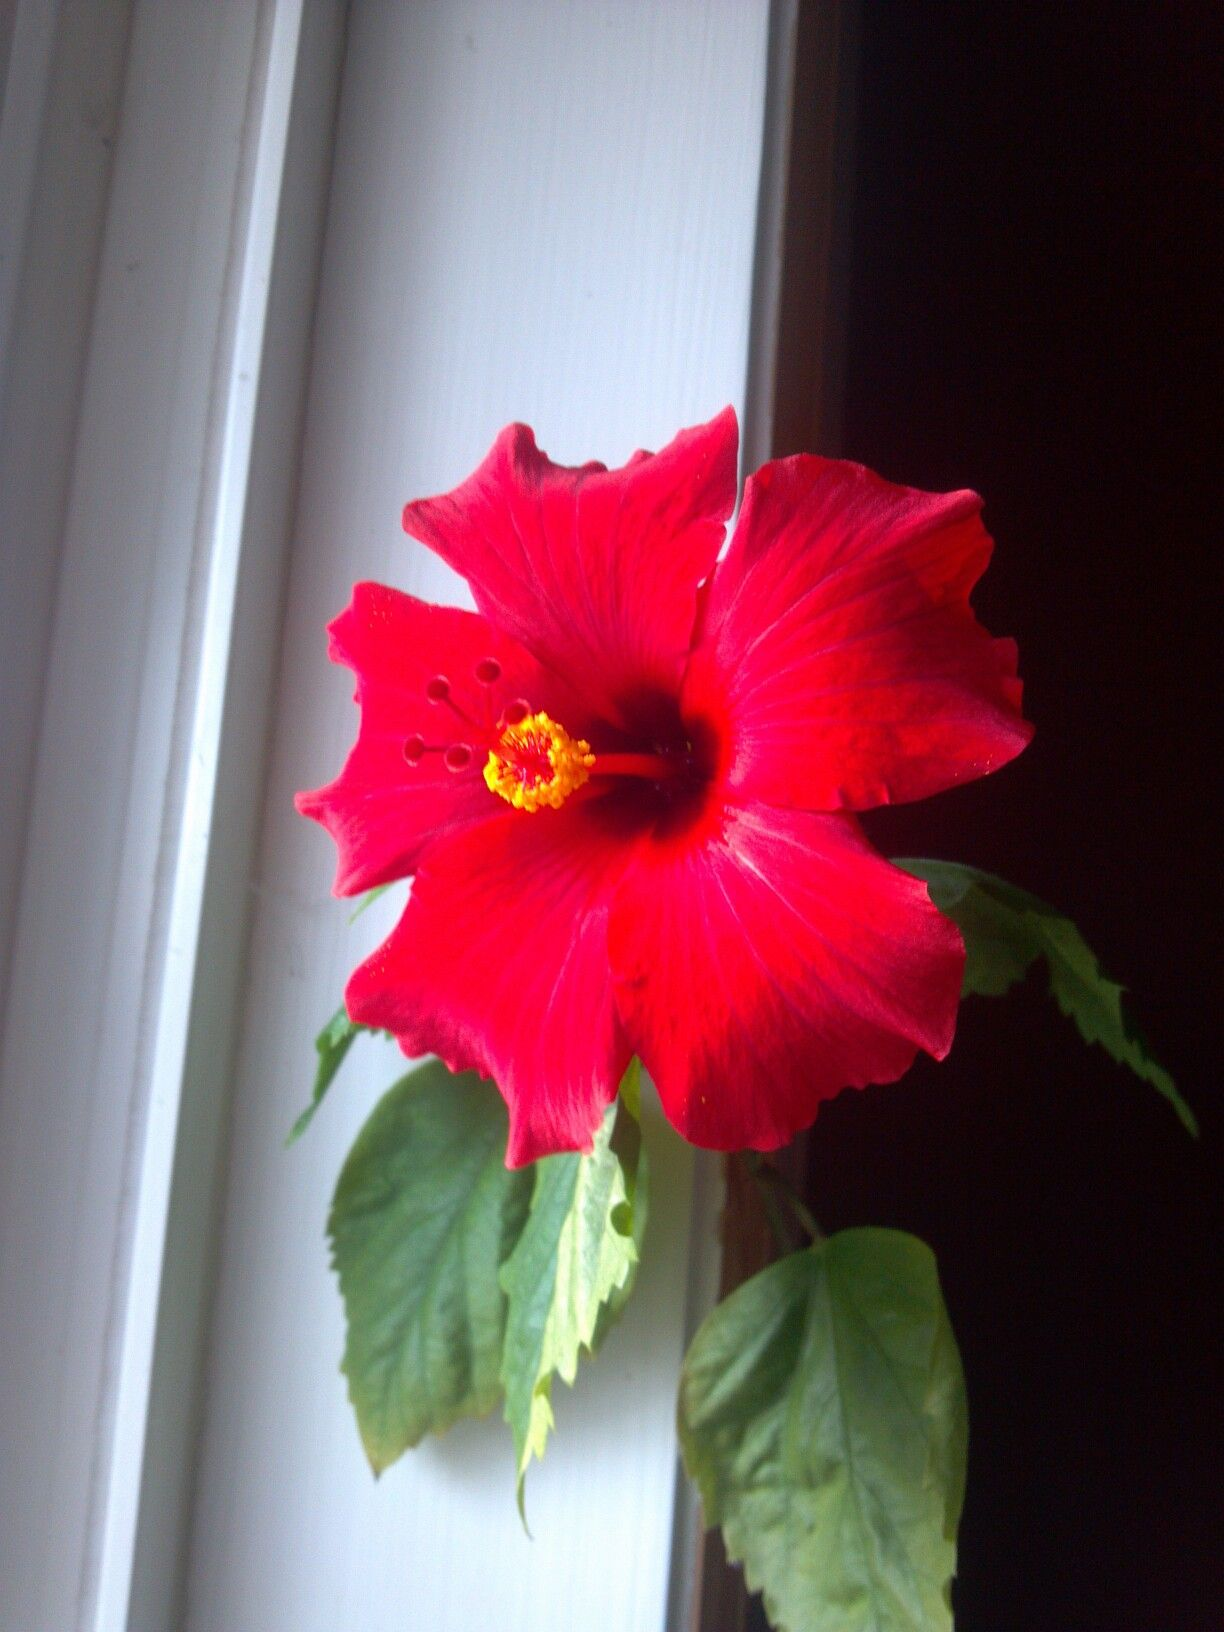 A Beautiful Bloom From My Hibiscus Tree Love This Flower Annual Flowers Hibiscus Tree Beautiful Blooms